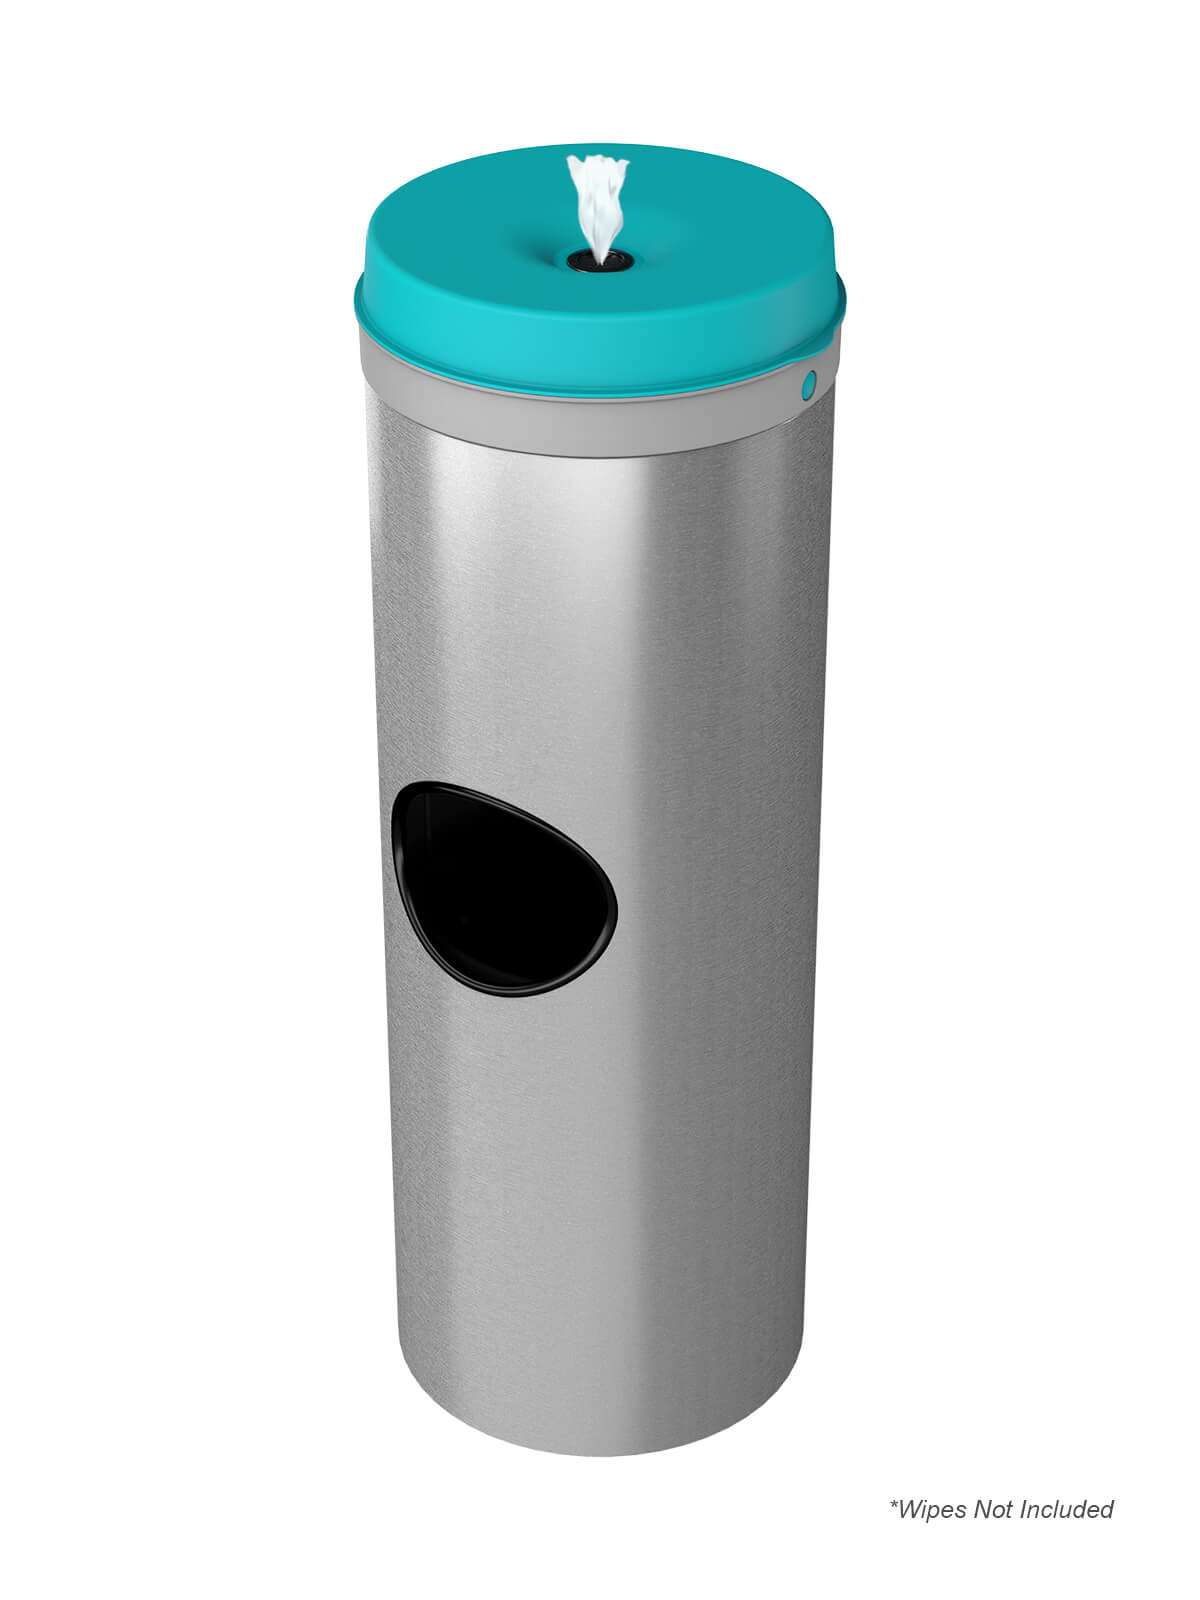 CLEANLI GO - Single - Full-Wipes - Stainless Steel-Grey-Teal